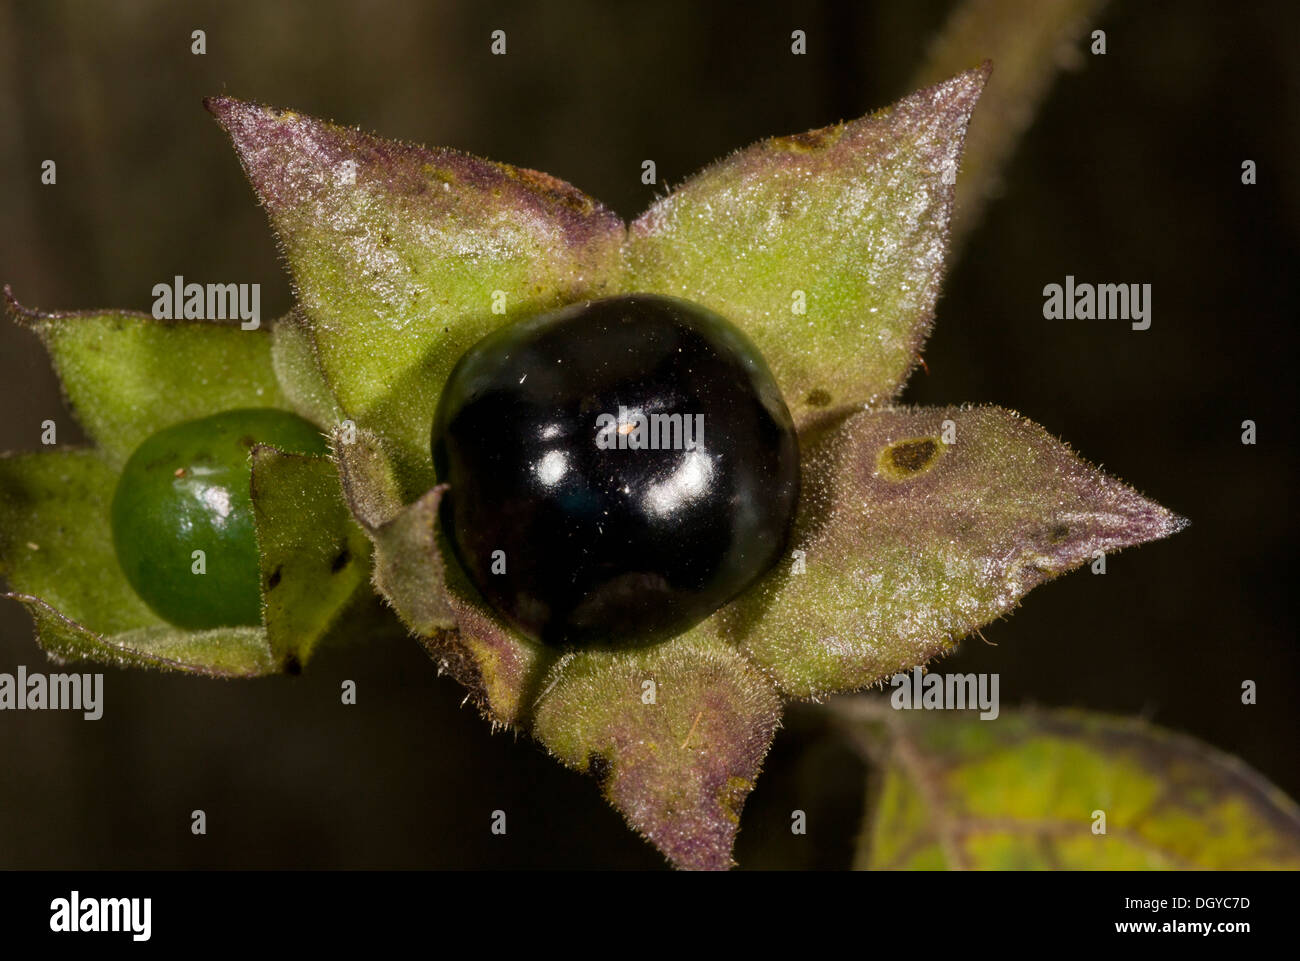 Poisonous berries of Deadly Nightshade (Atropa belladonna) close-up, Hampshire, England, UK - Stock Image